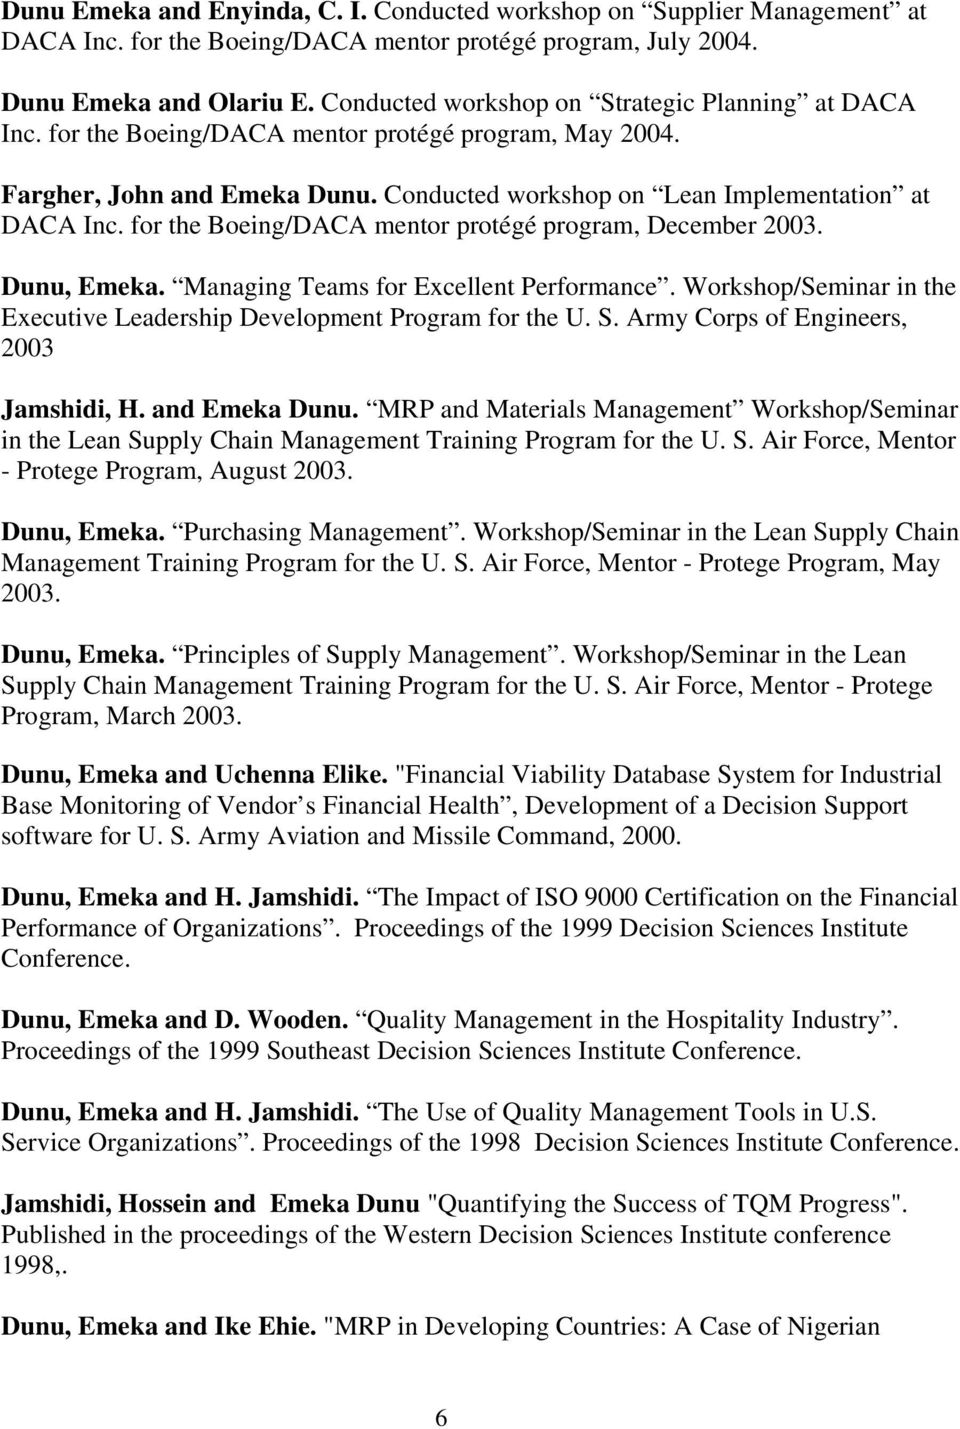 for the Boeing/DACA mentor protégé program, December 2003. Dunu, Emeka. Managing Teams for Excellent Performance. Workshop/Seminar in the Executive Leadership Development Program for the U. S.